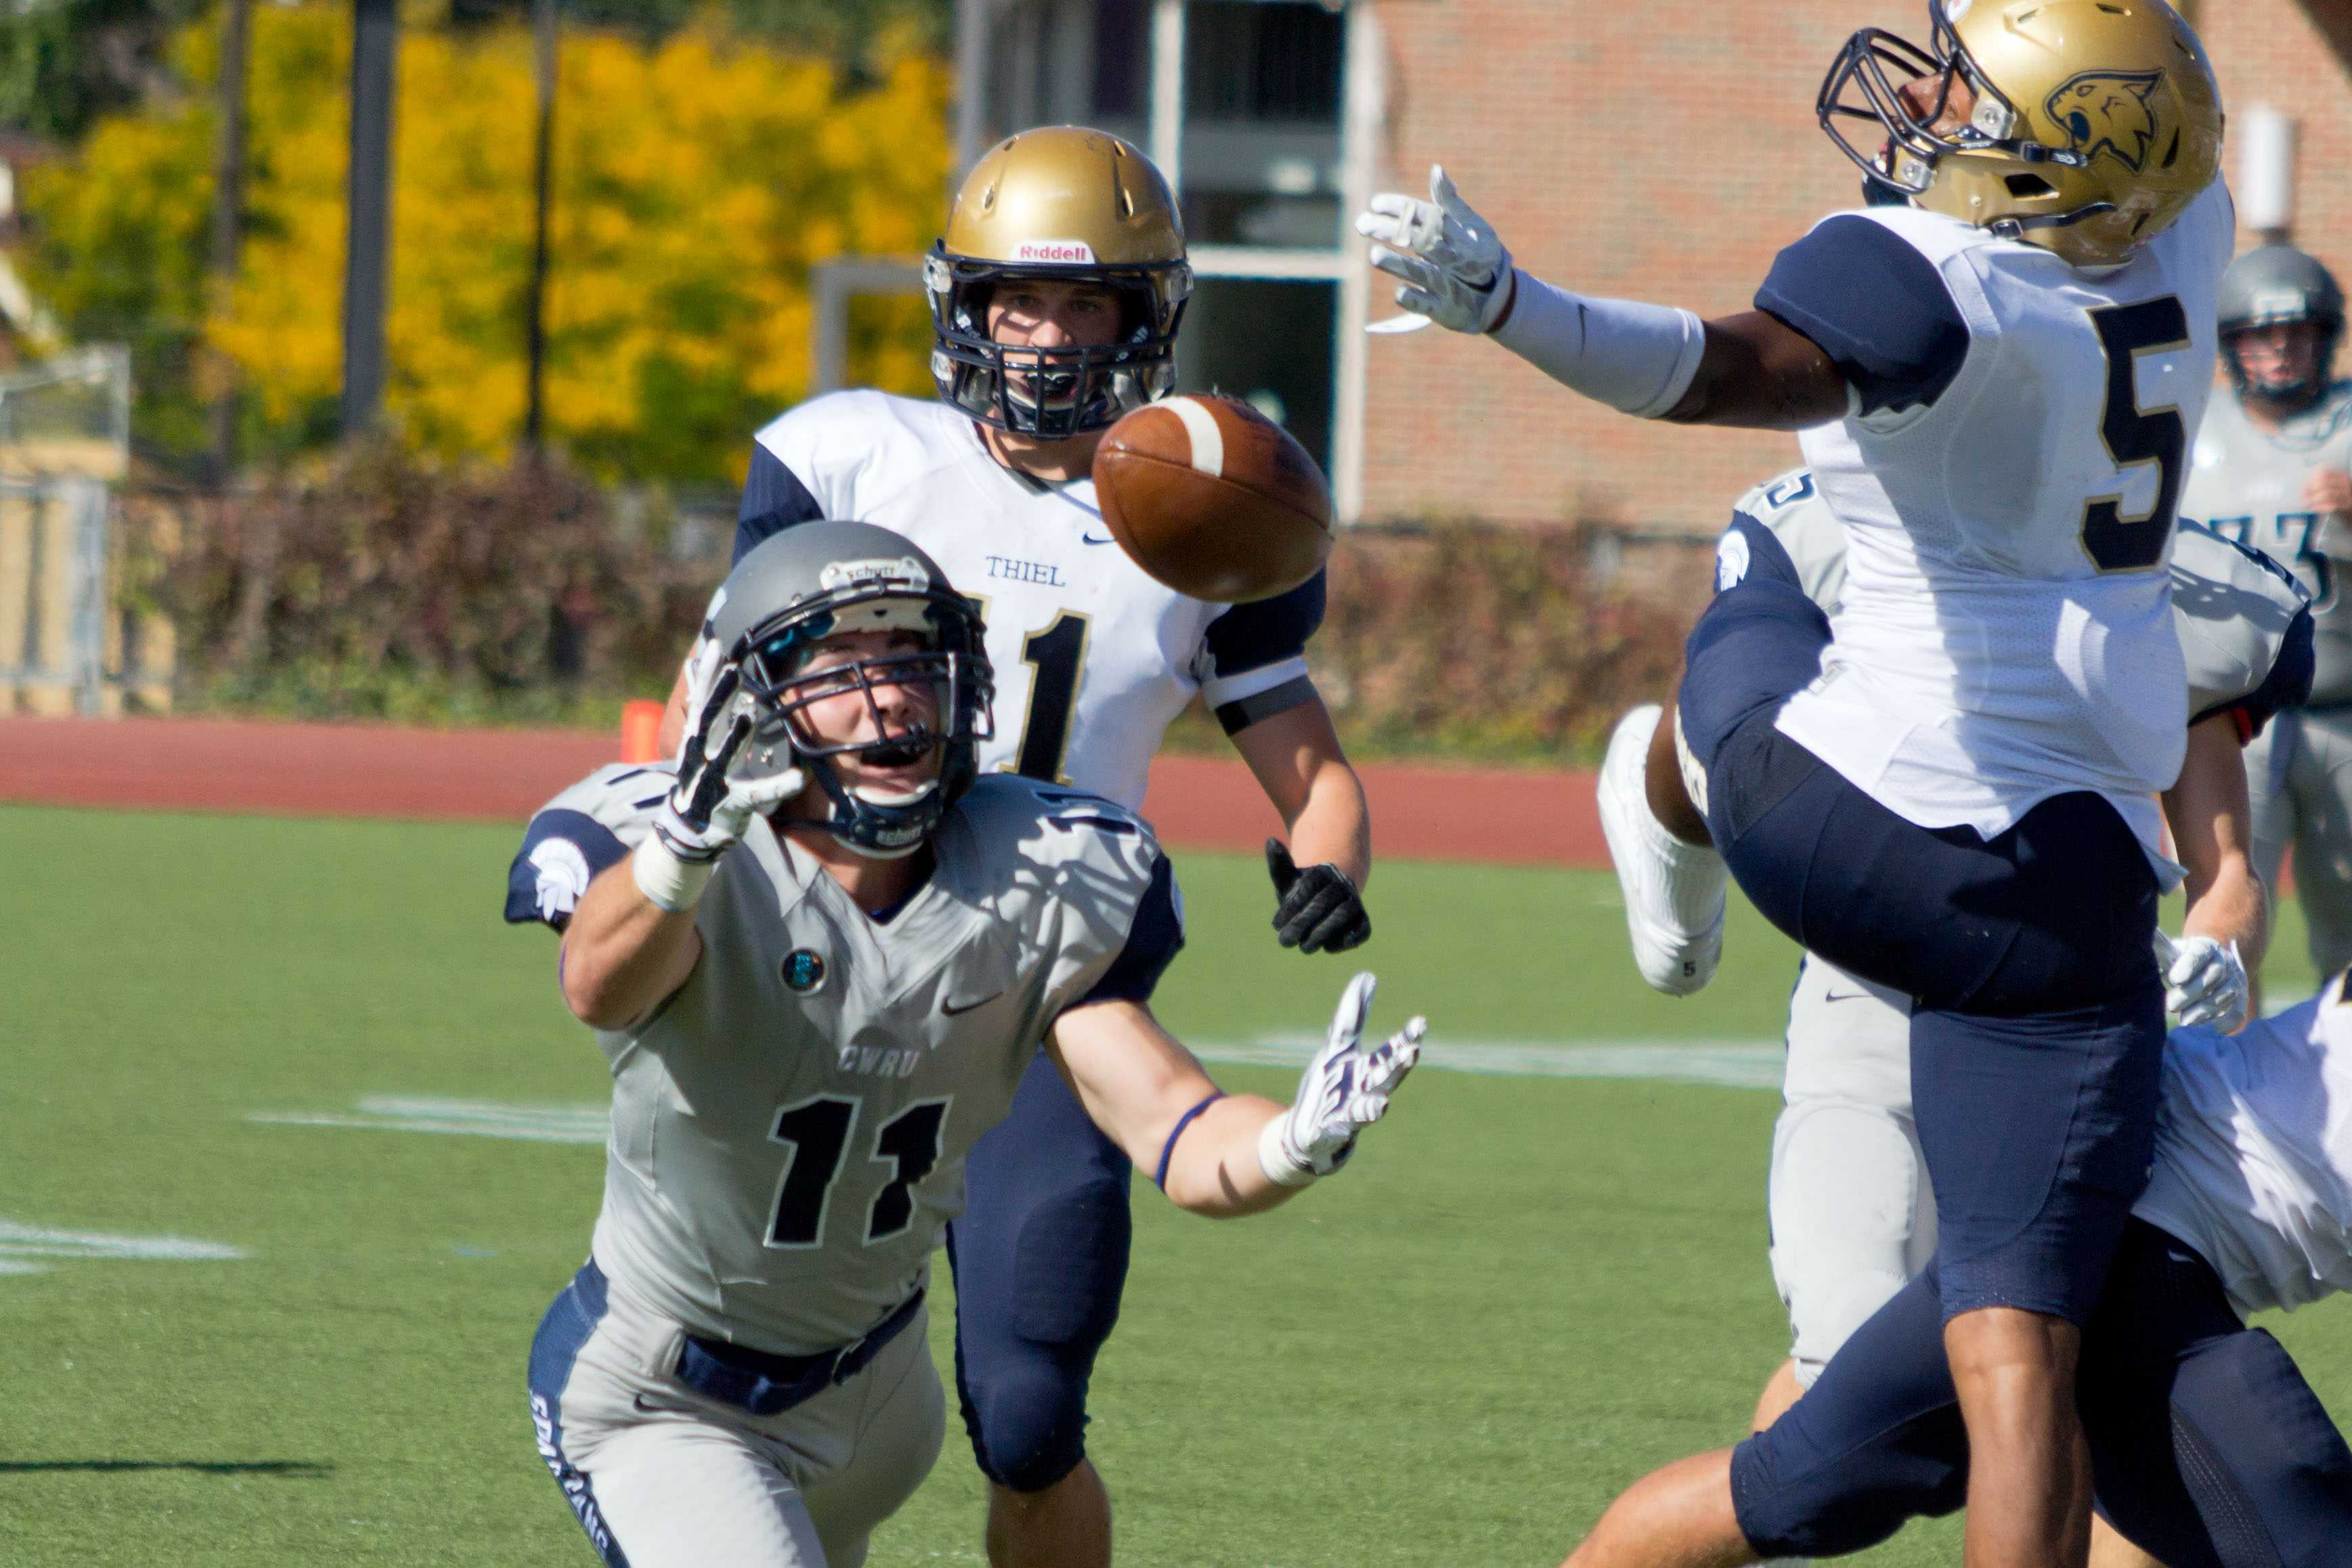 Junior wide receiver Dan Cronin catches a big pass back in the Spartan's win over Thiel on Sept. 27th at home.